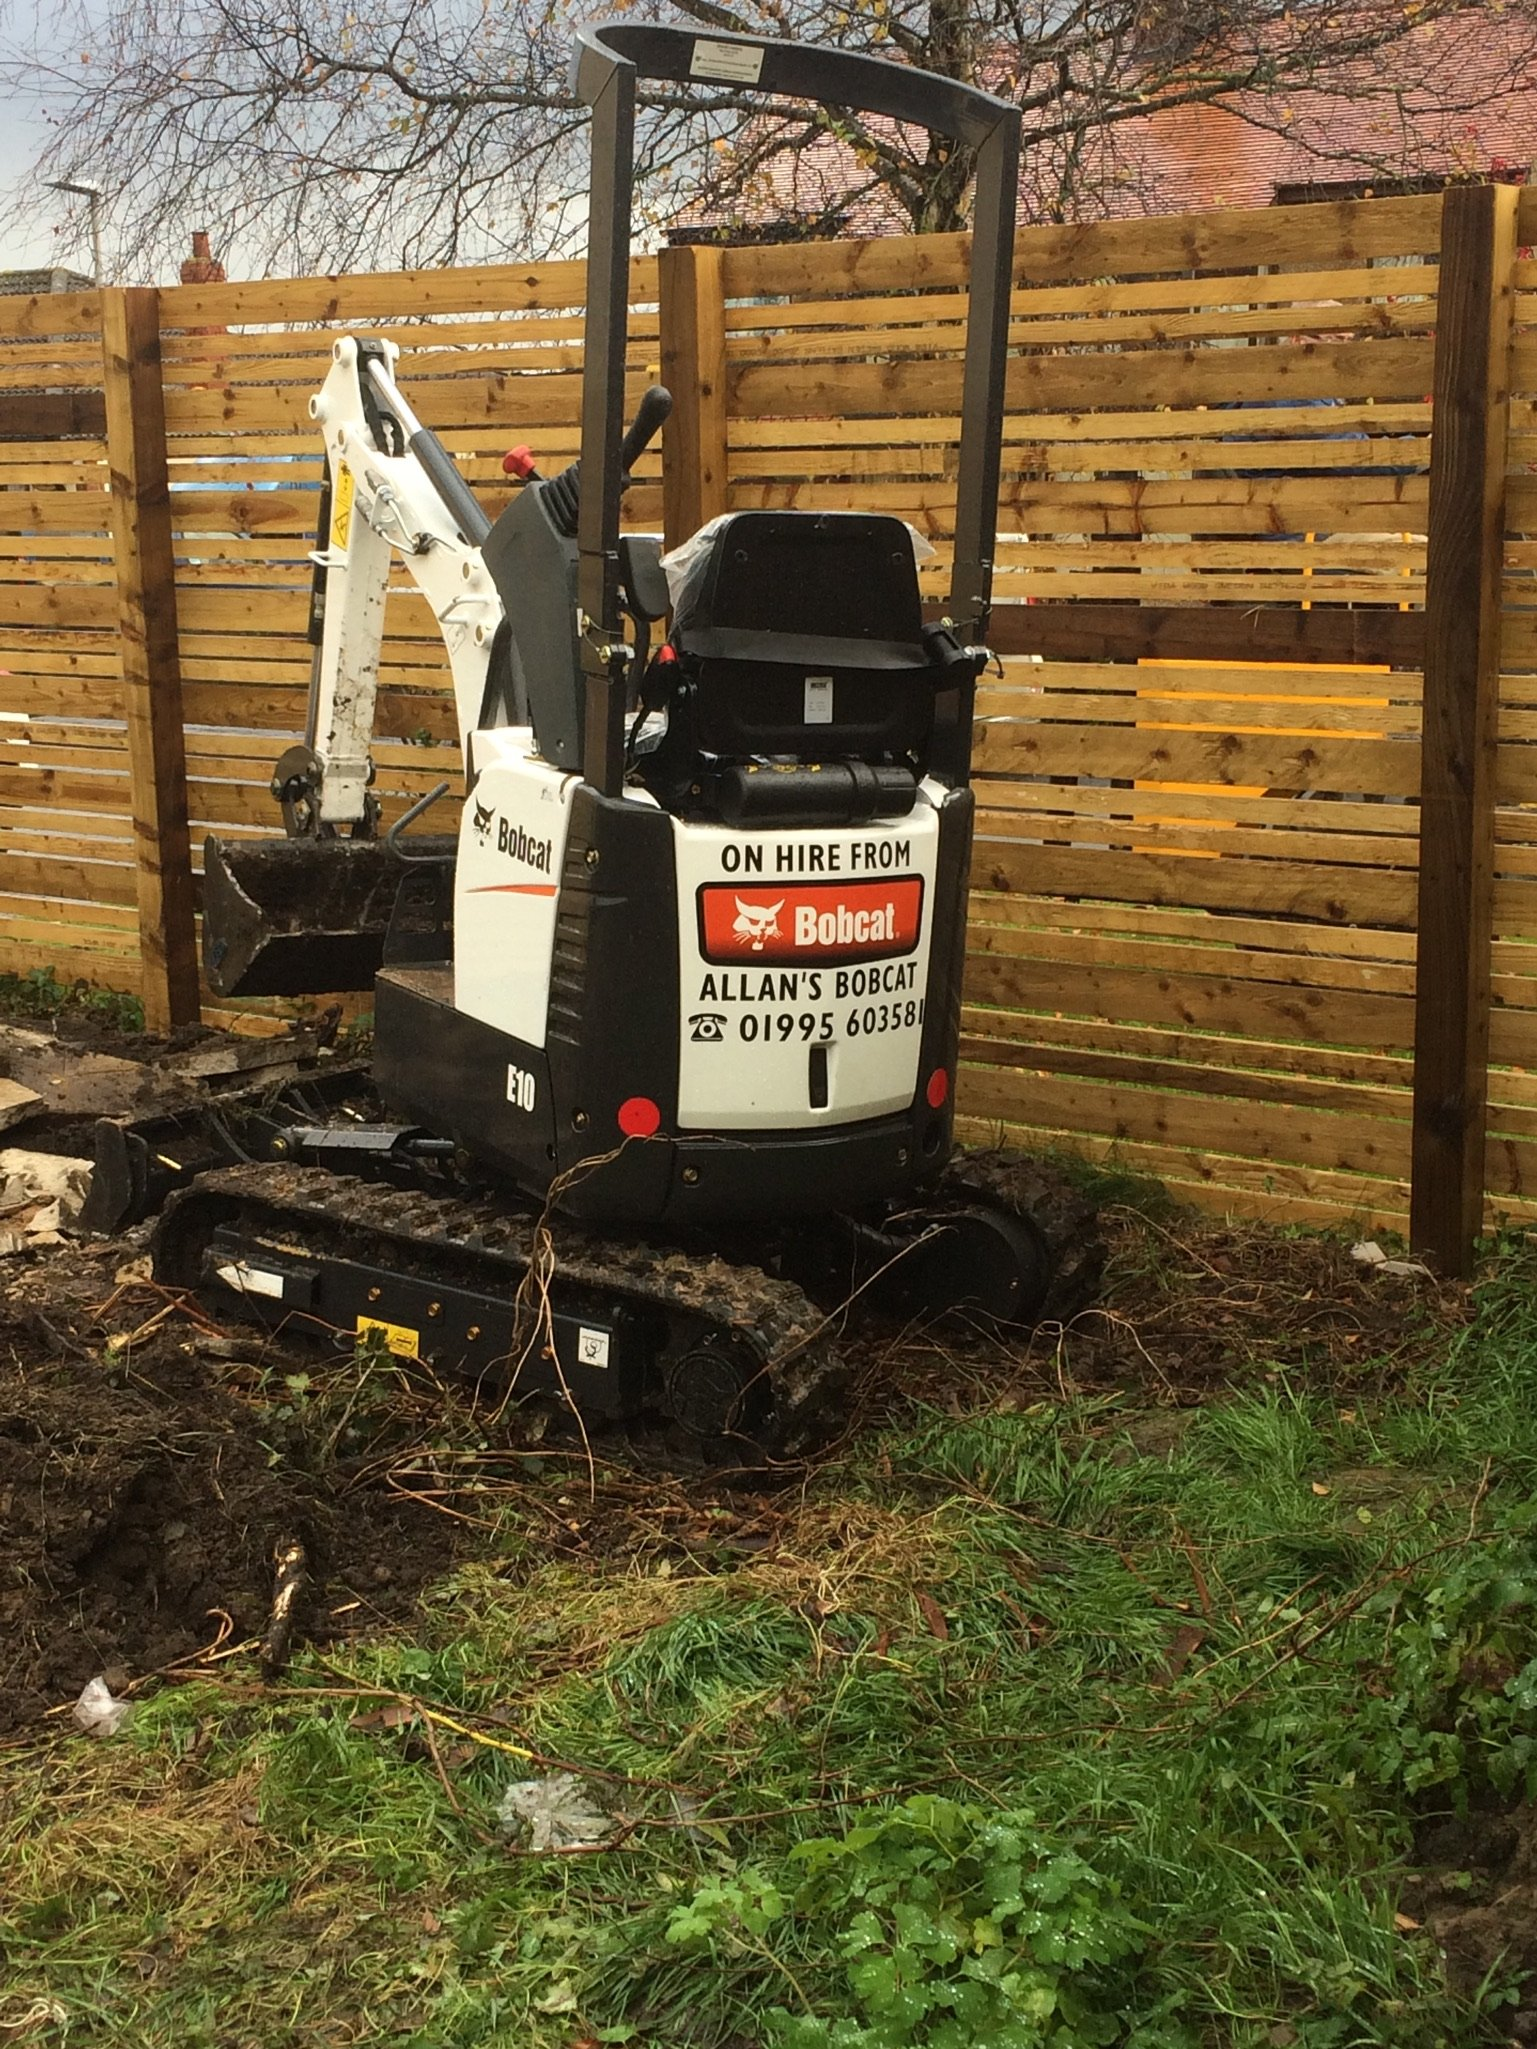 Bobcat mini plant hire